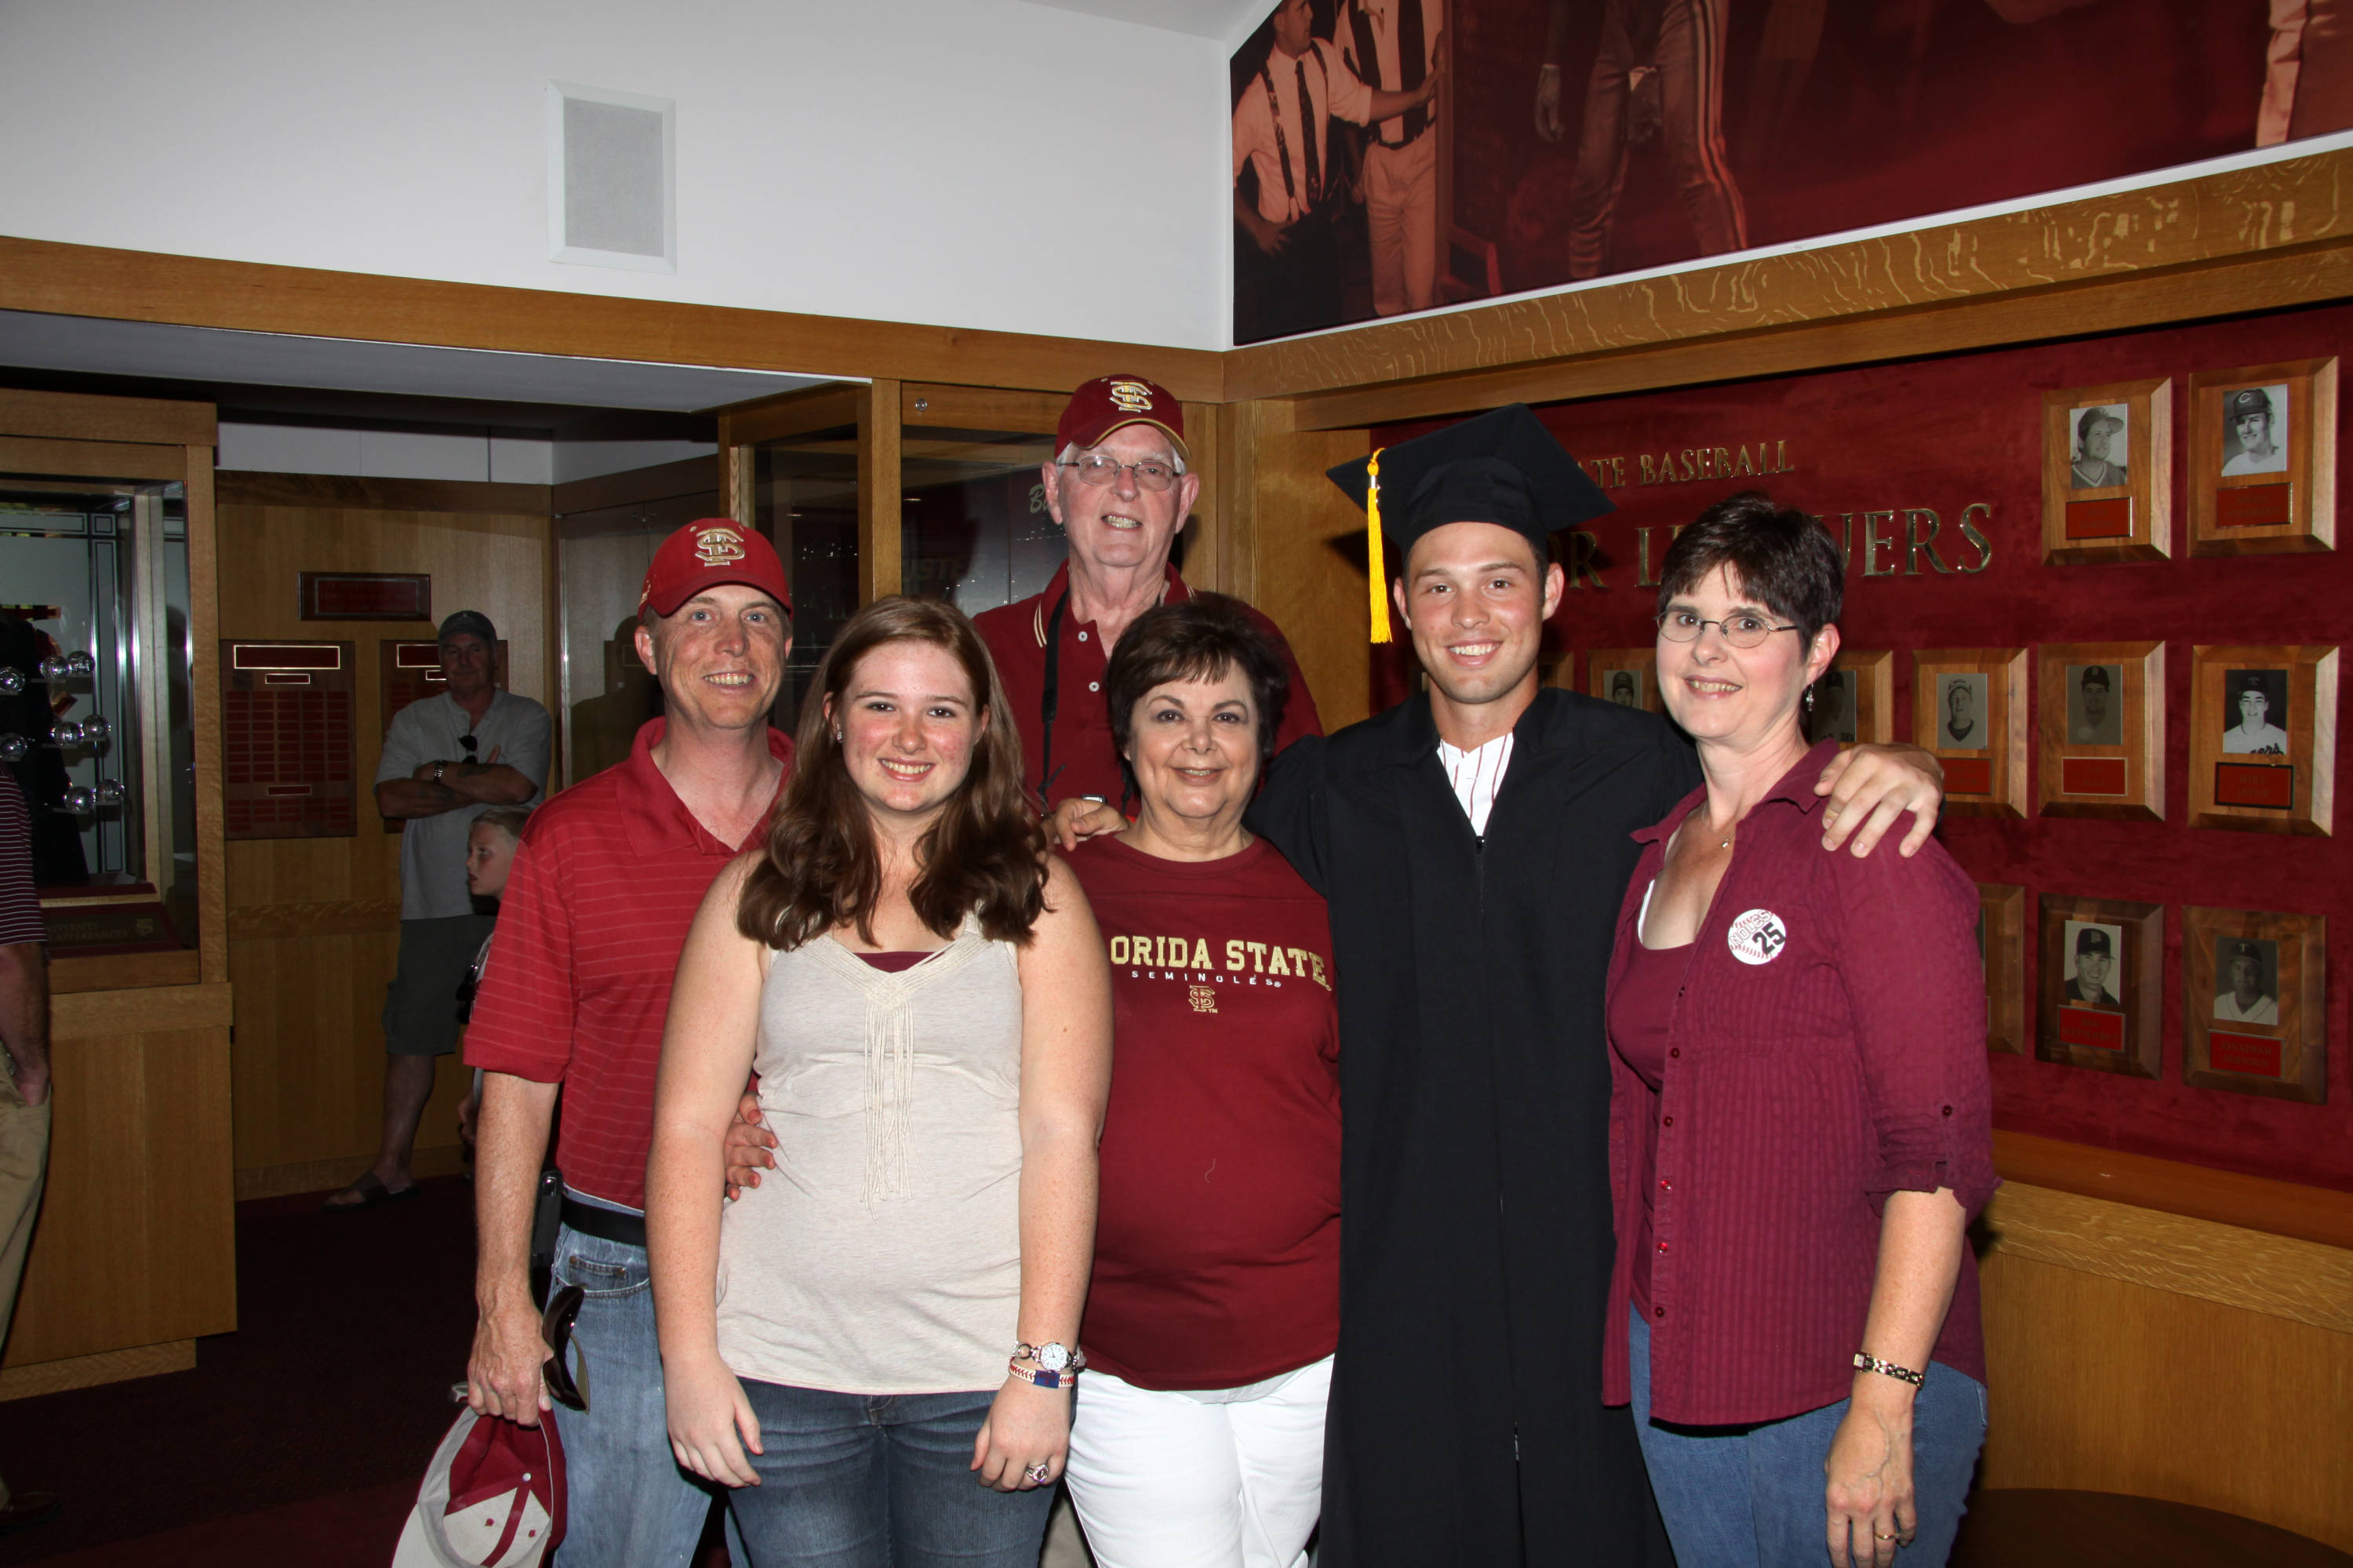 2011 Spring Graduation Ceremony held at Dick Howser Stadium to honor the graduating baseball seniors. Mike McGee (25) and family